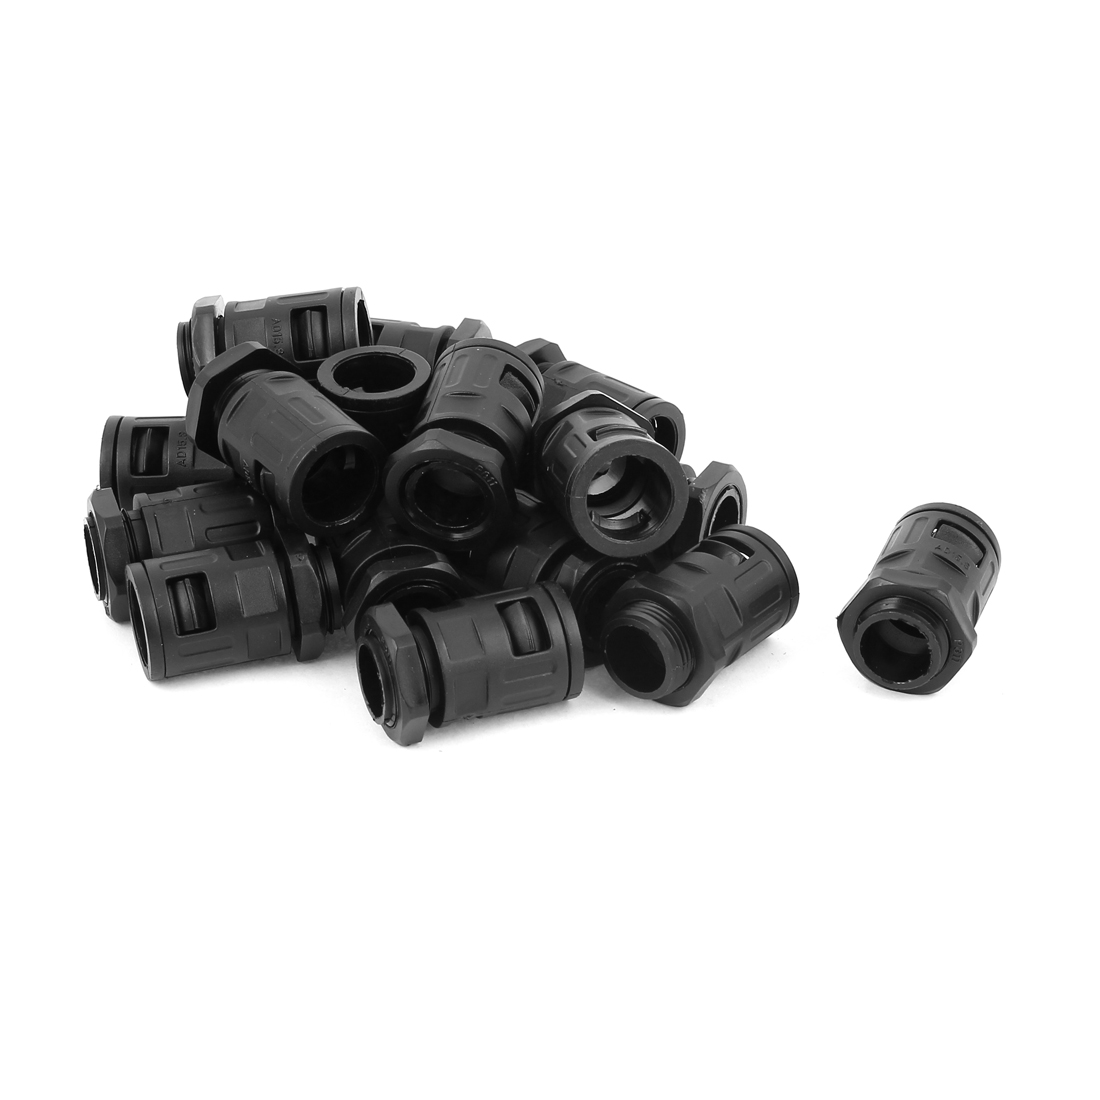 AD15.8 Plastic Flexible Corrugated Pipe Round Cable Hose Connector Black 18 Pcs